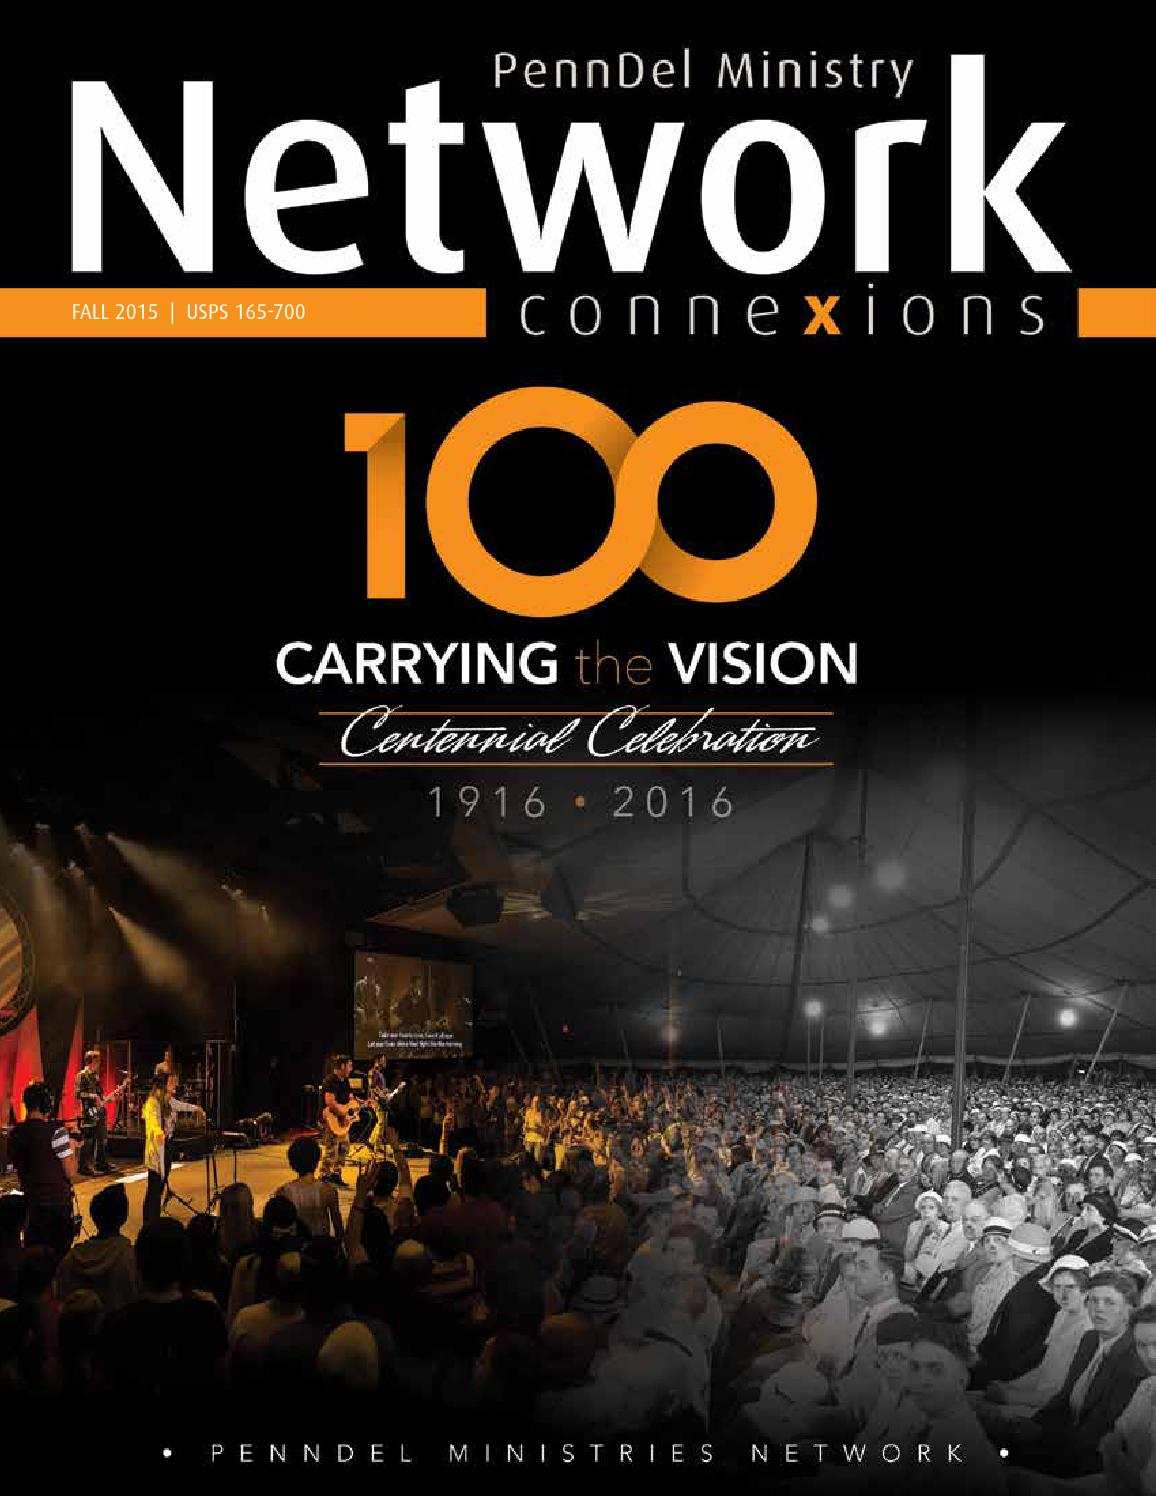 Network ConneXions Fall 2015 by PennDel Ministry Network ...